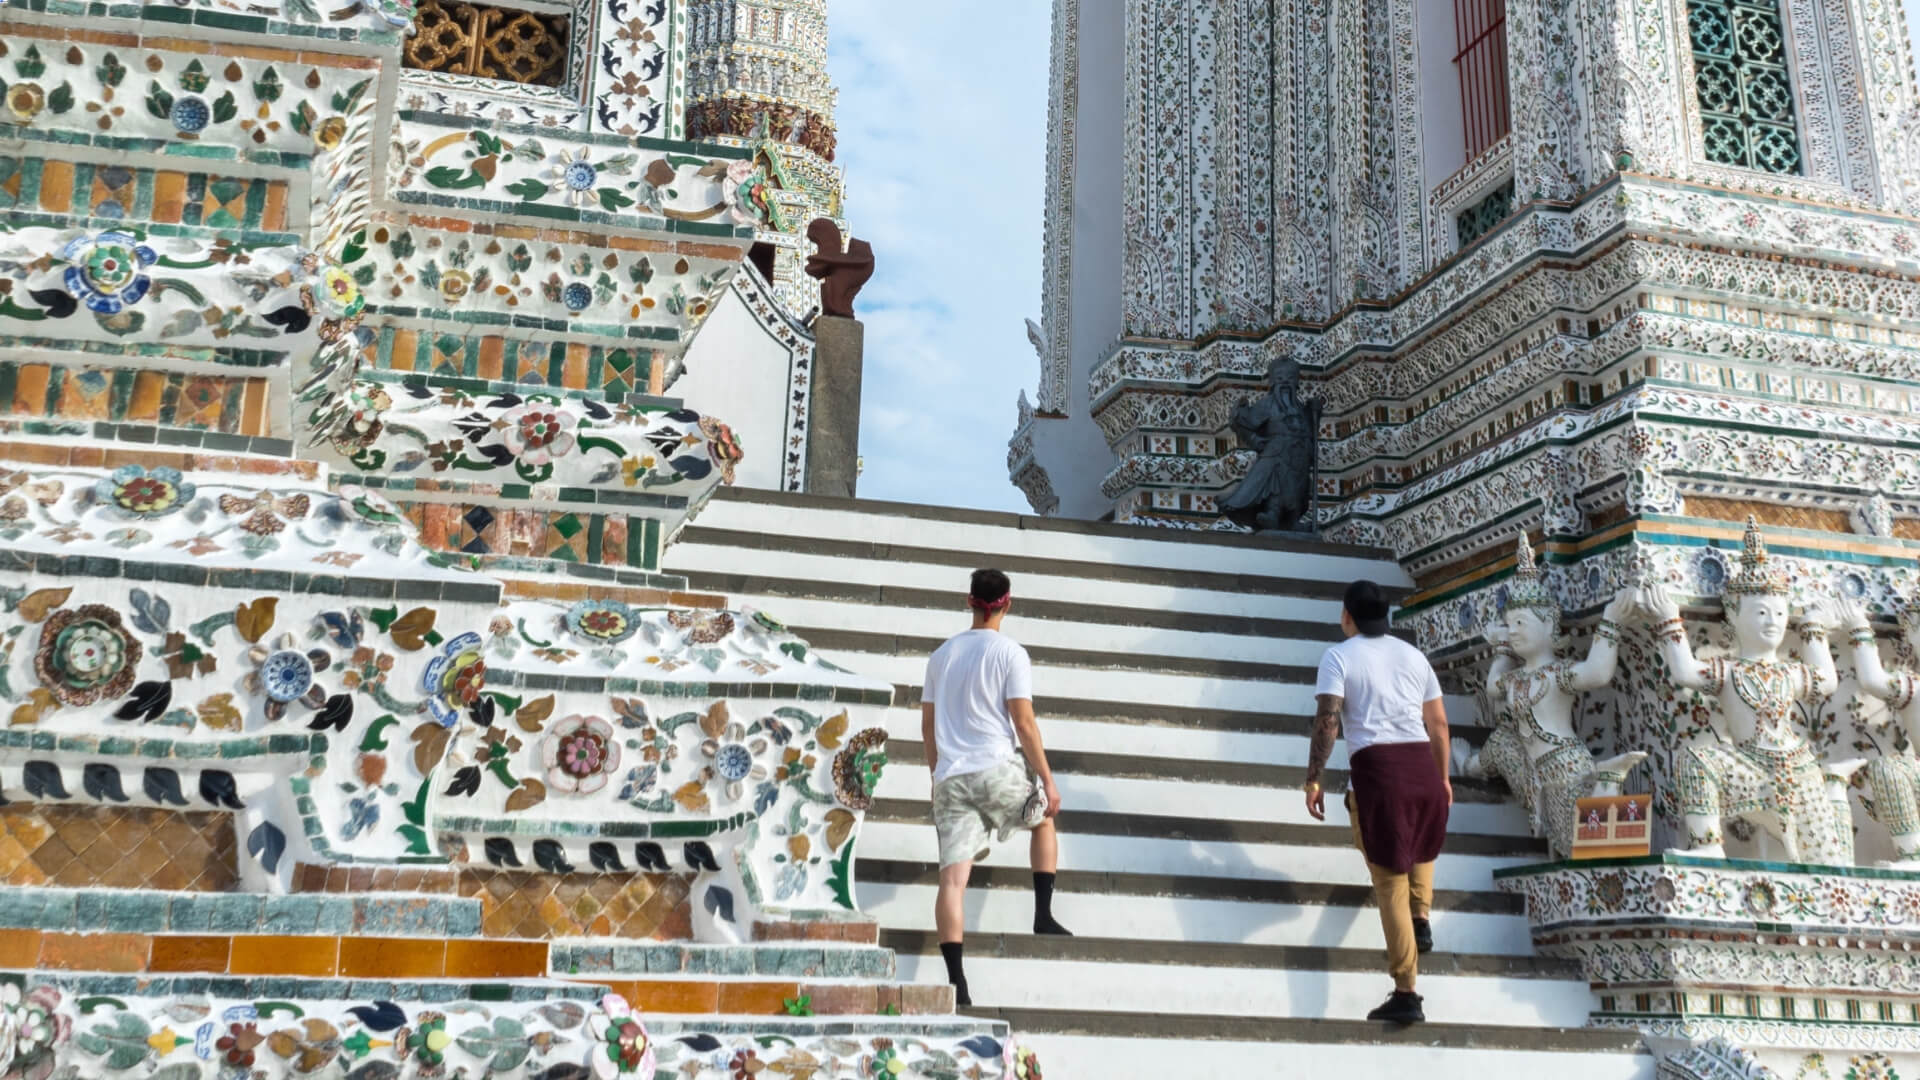 Two men are walking on the stairs of a white temple in Thailand.